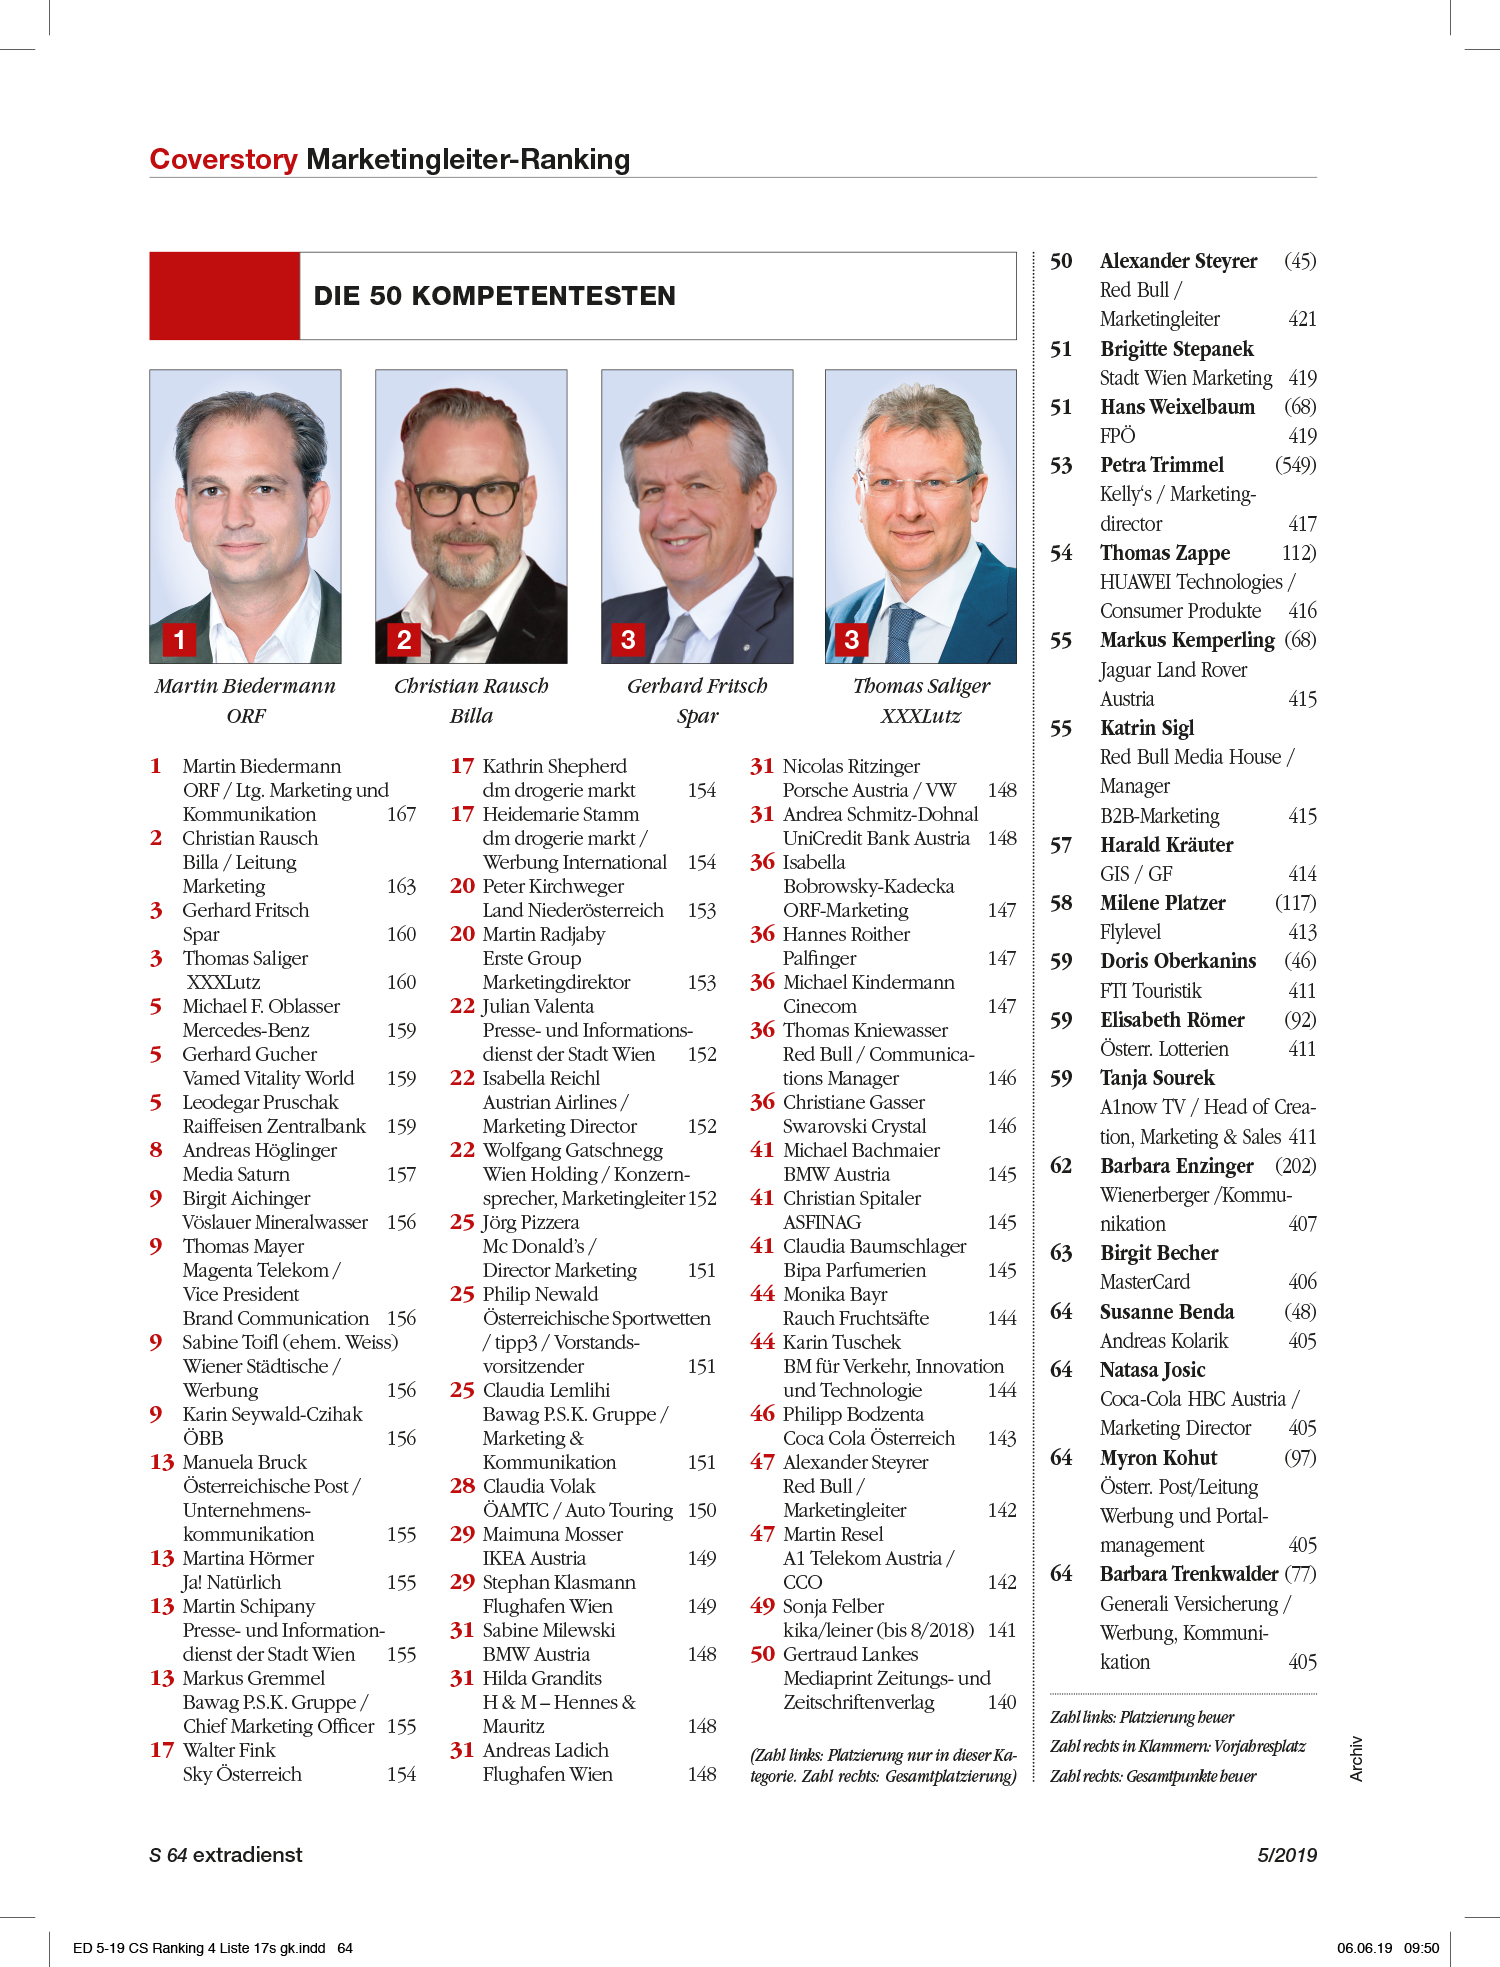 Das Marketingleiter-Ranking 2019